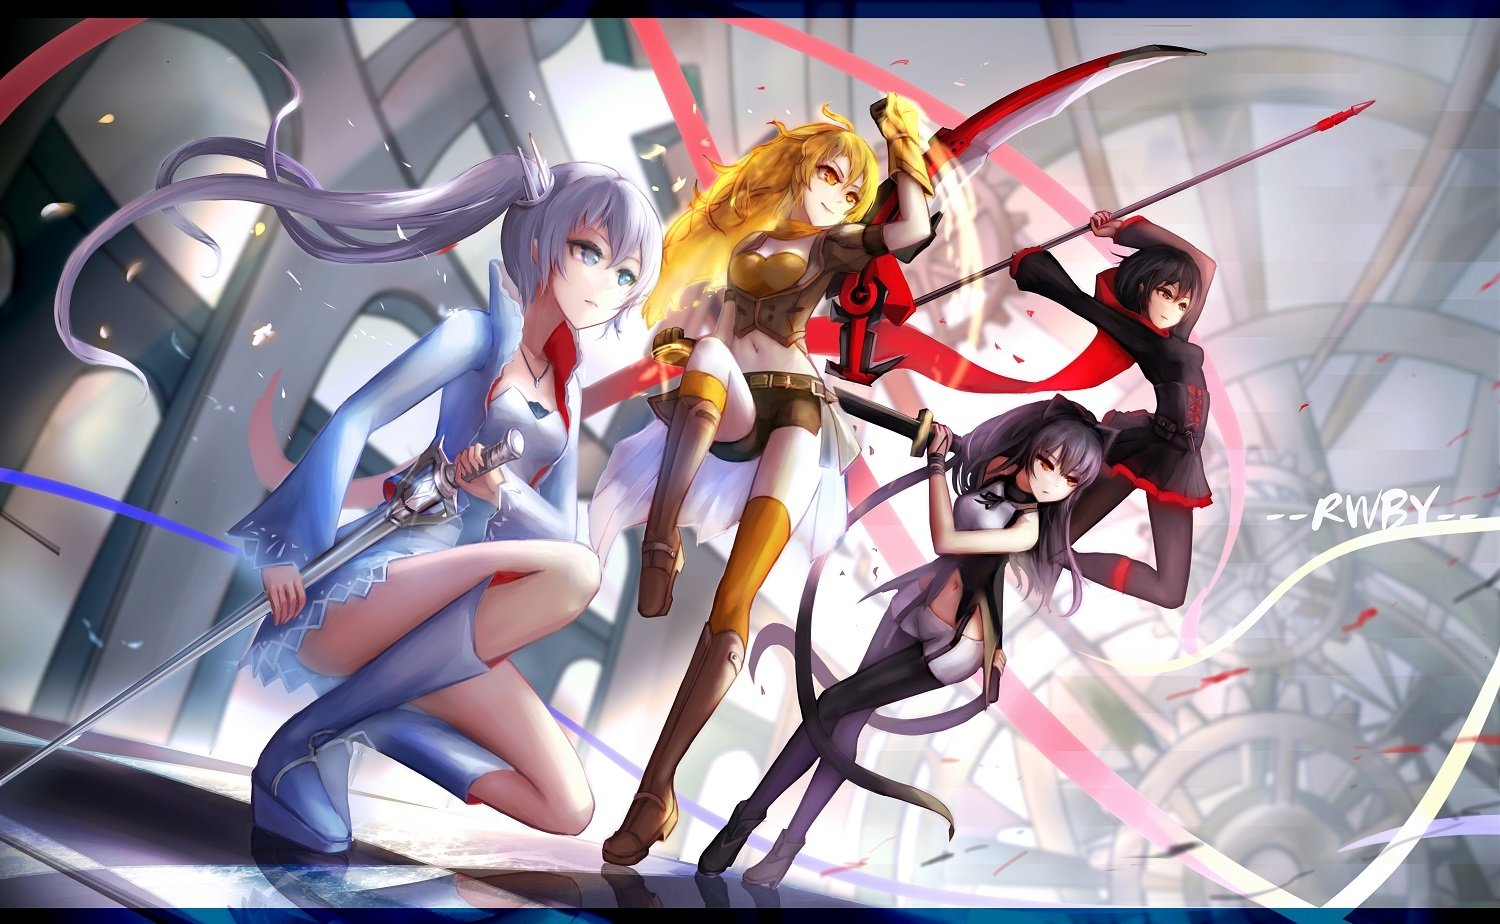 Anime - RWBY  Wallpaper